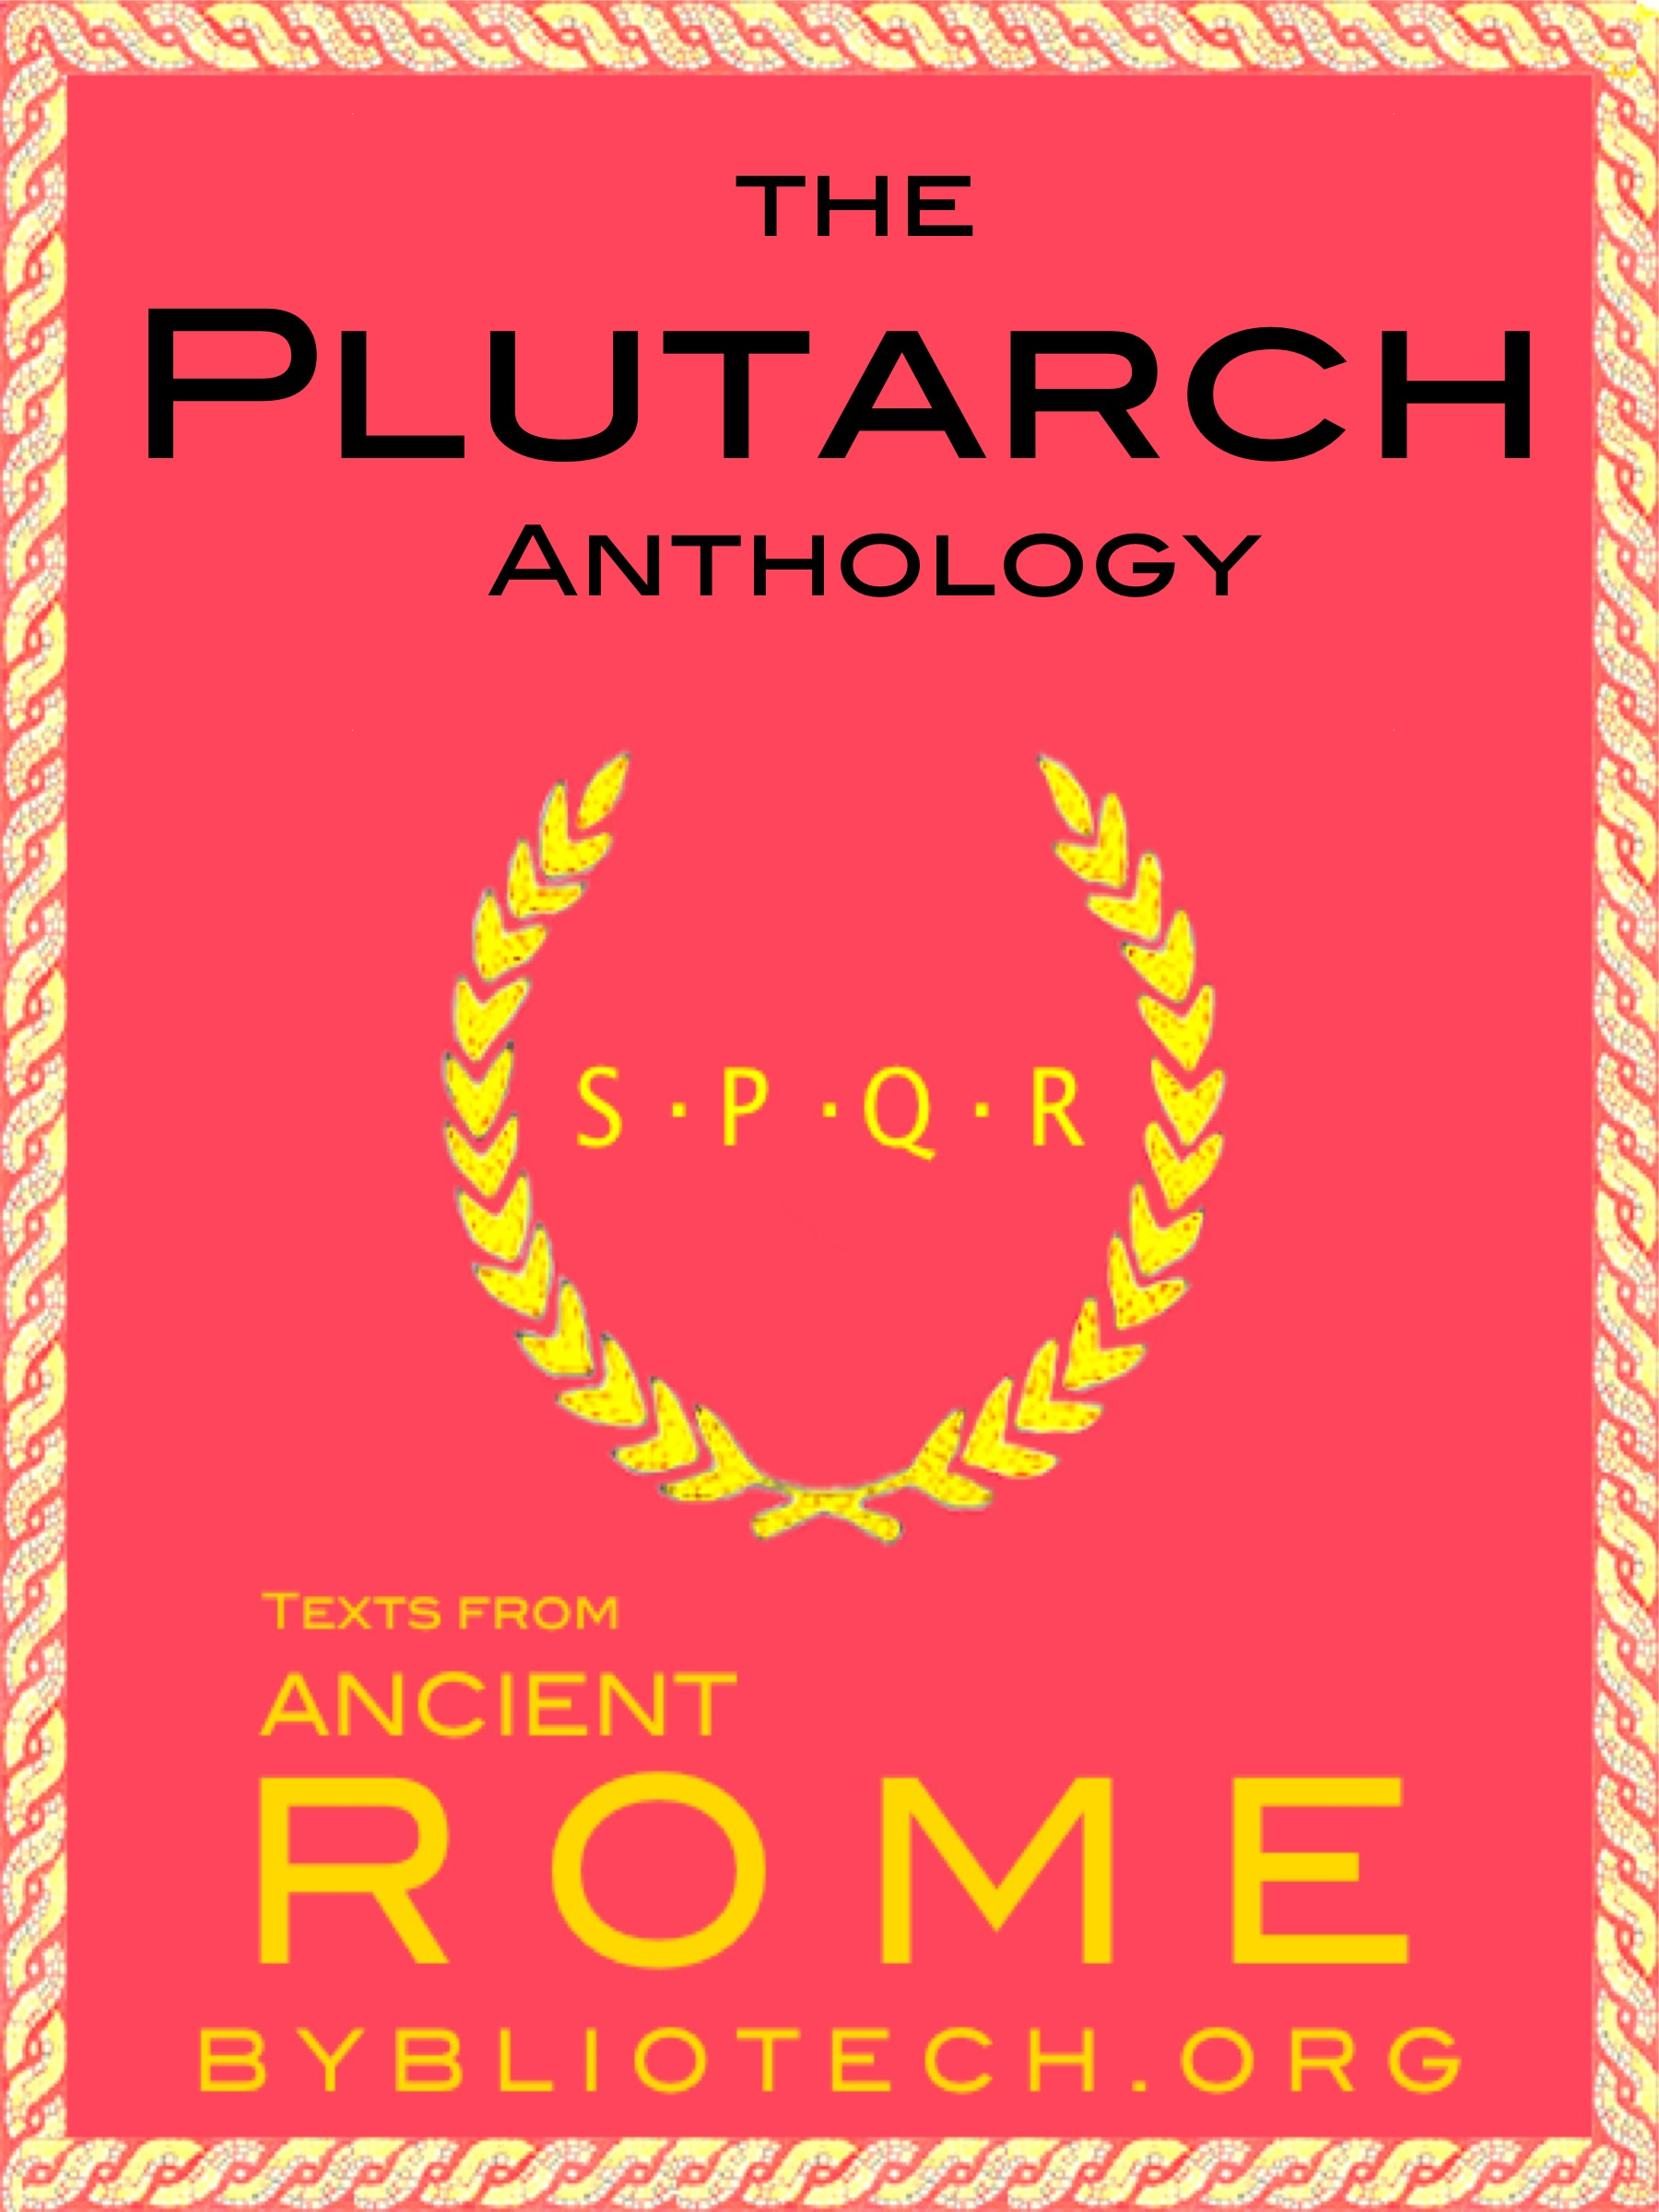 The Complete Plutarch Anthology